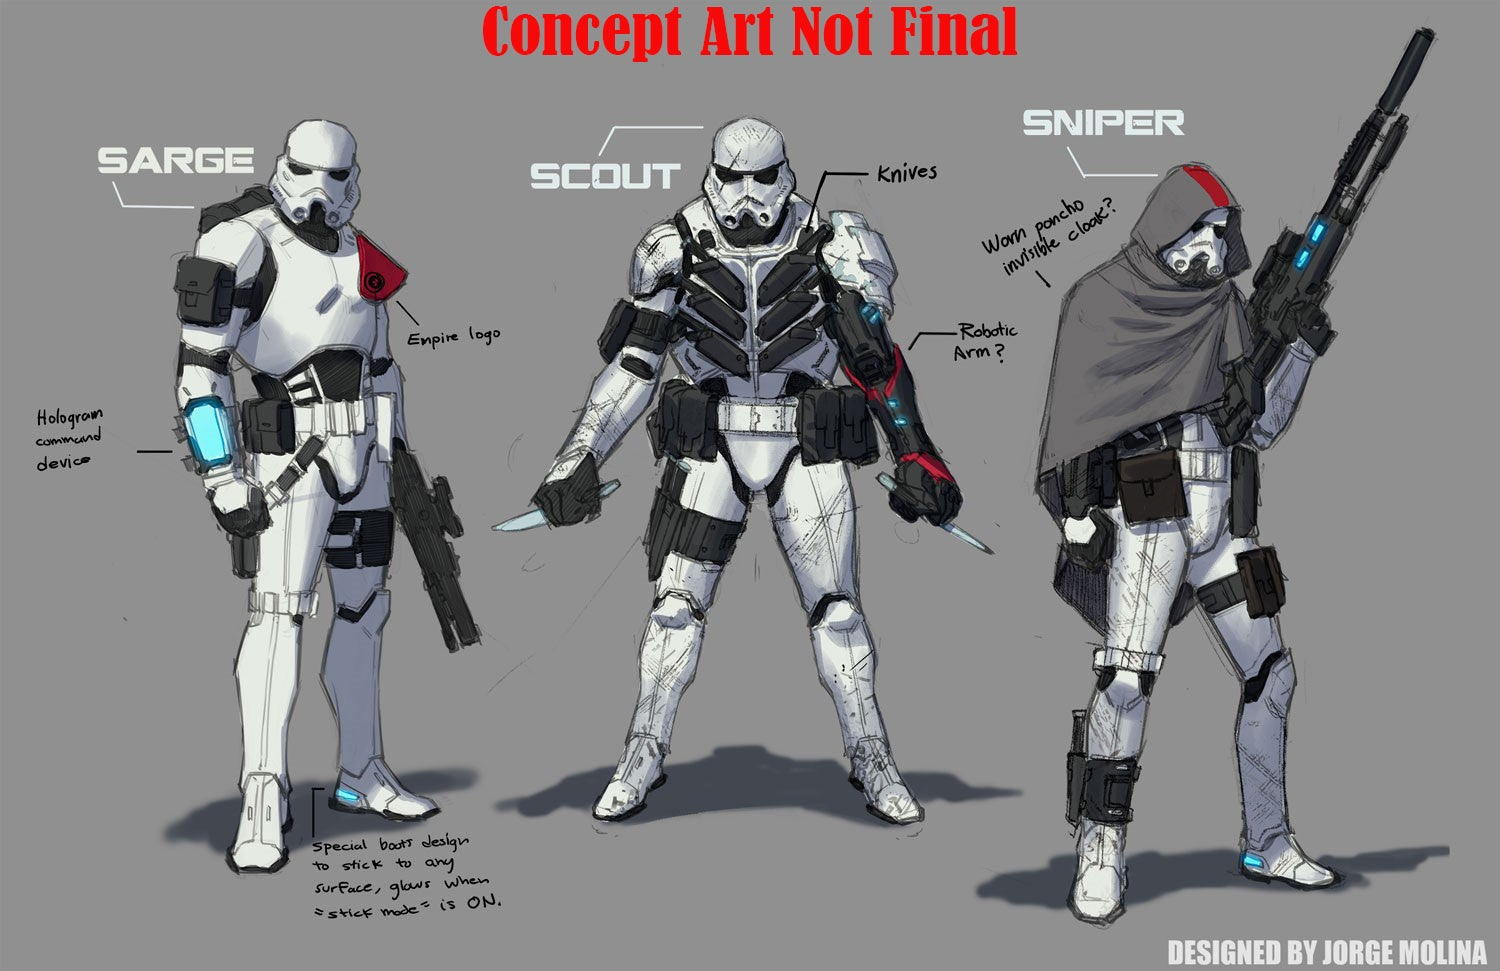 The Star Wars Comic's New Stormtroopers Look Absurdly Awesome